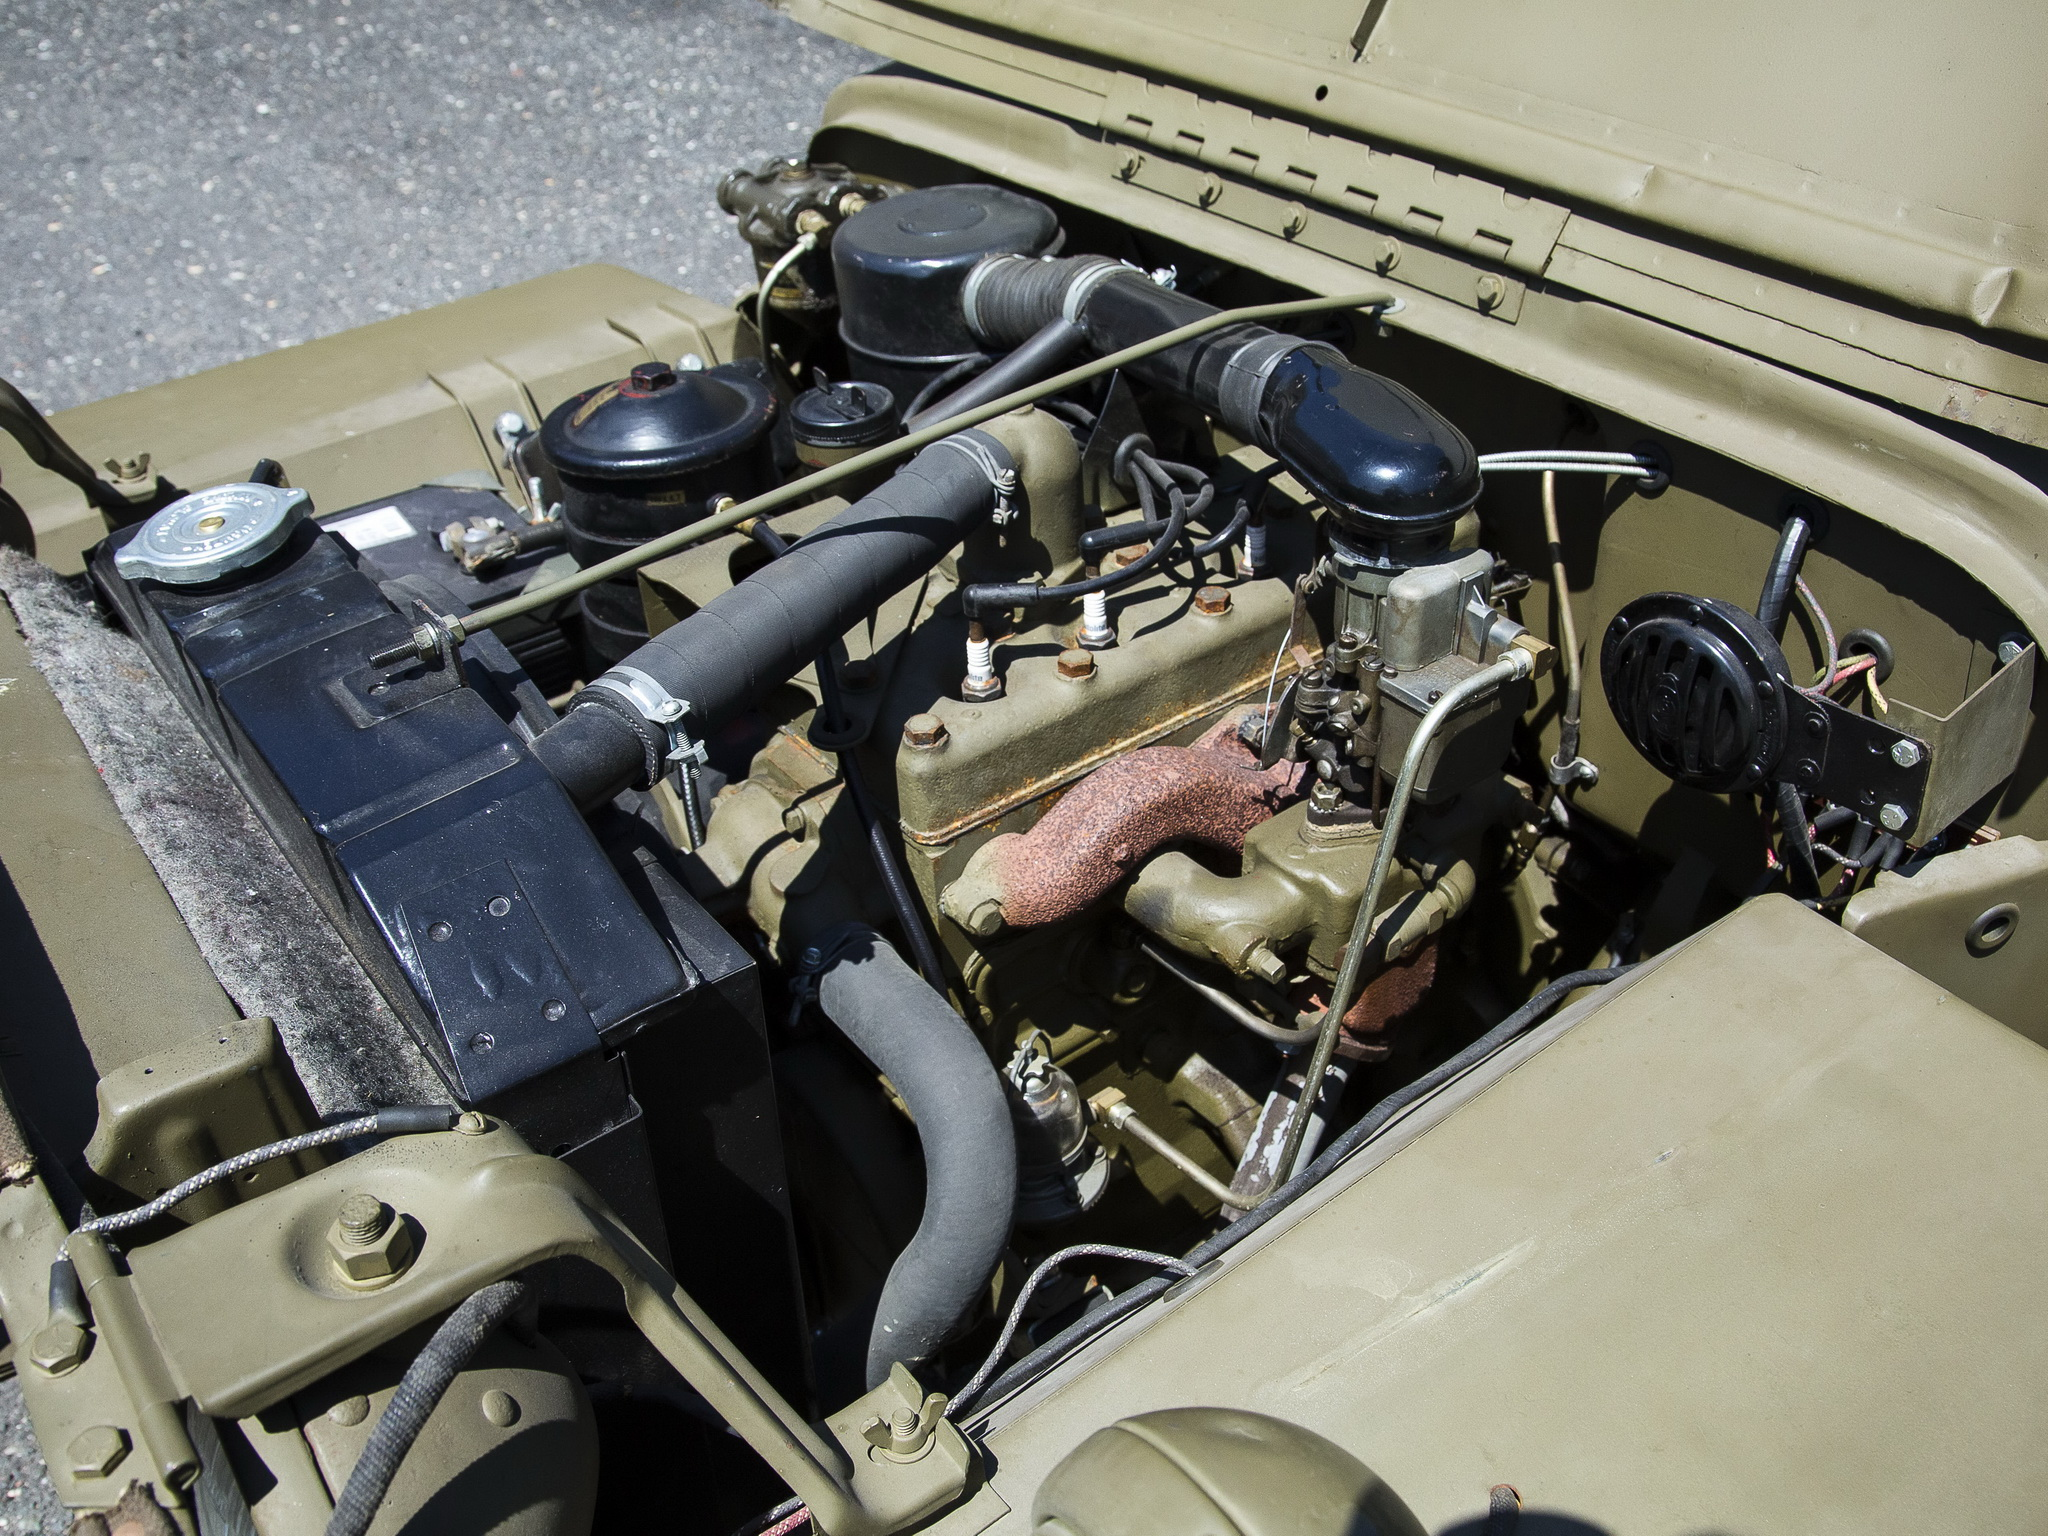 1942 Willys M B Military Offroad 4x4 Engine Engines